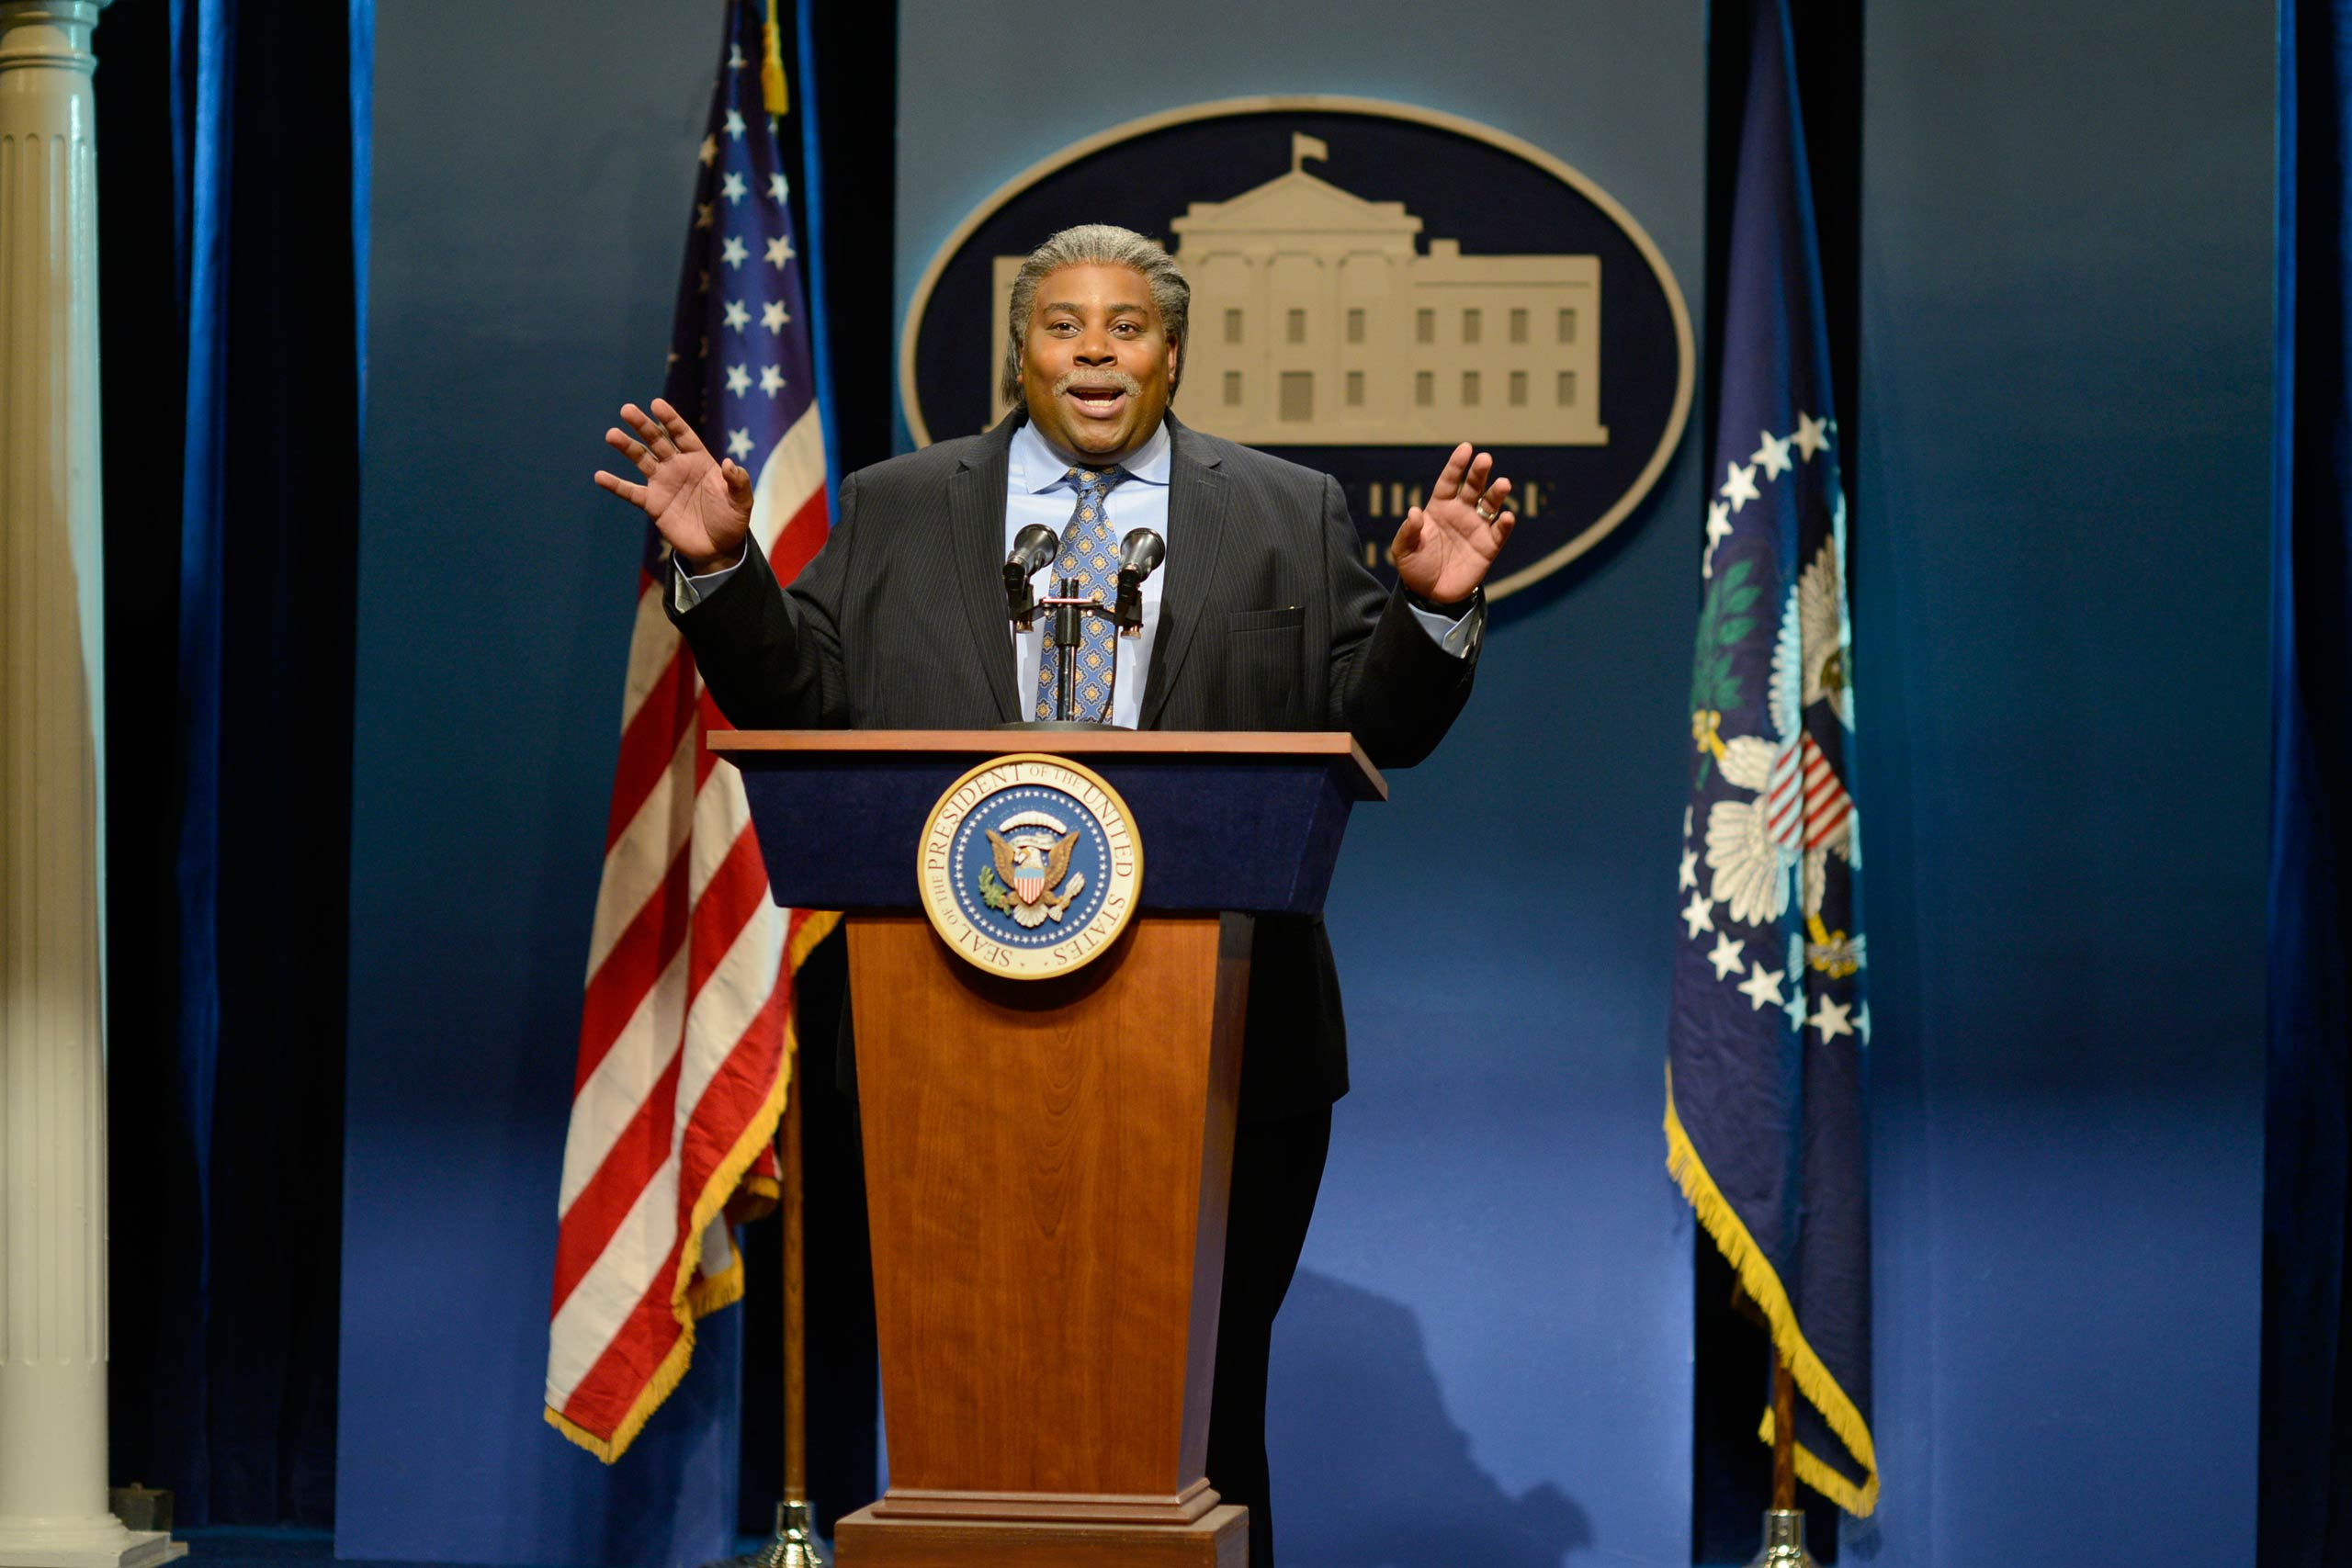 Kenan Thompson as Rev. Al Sharpton on Oct. 25, 2014.